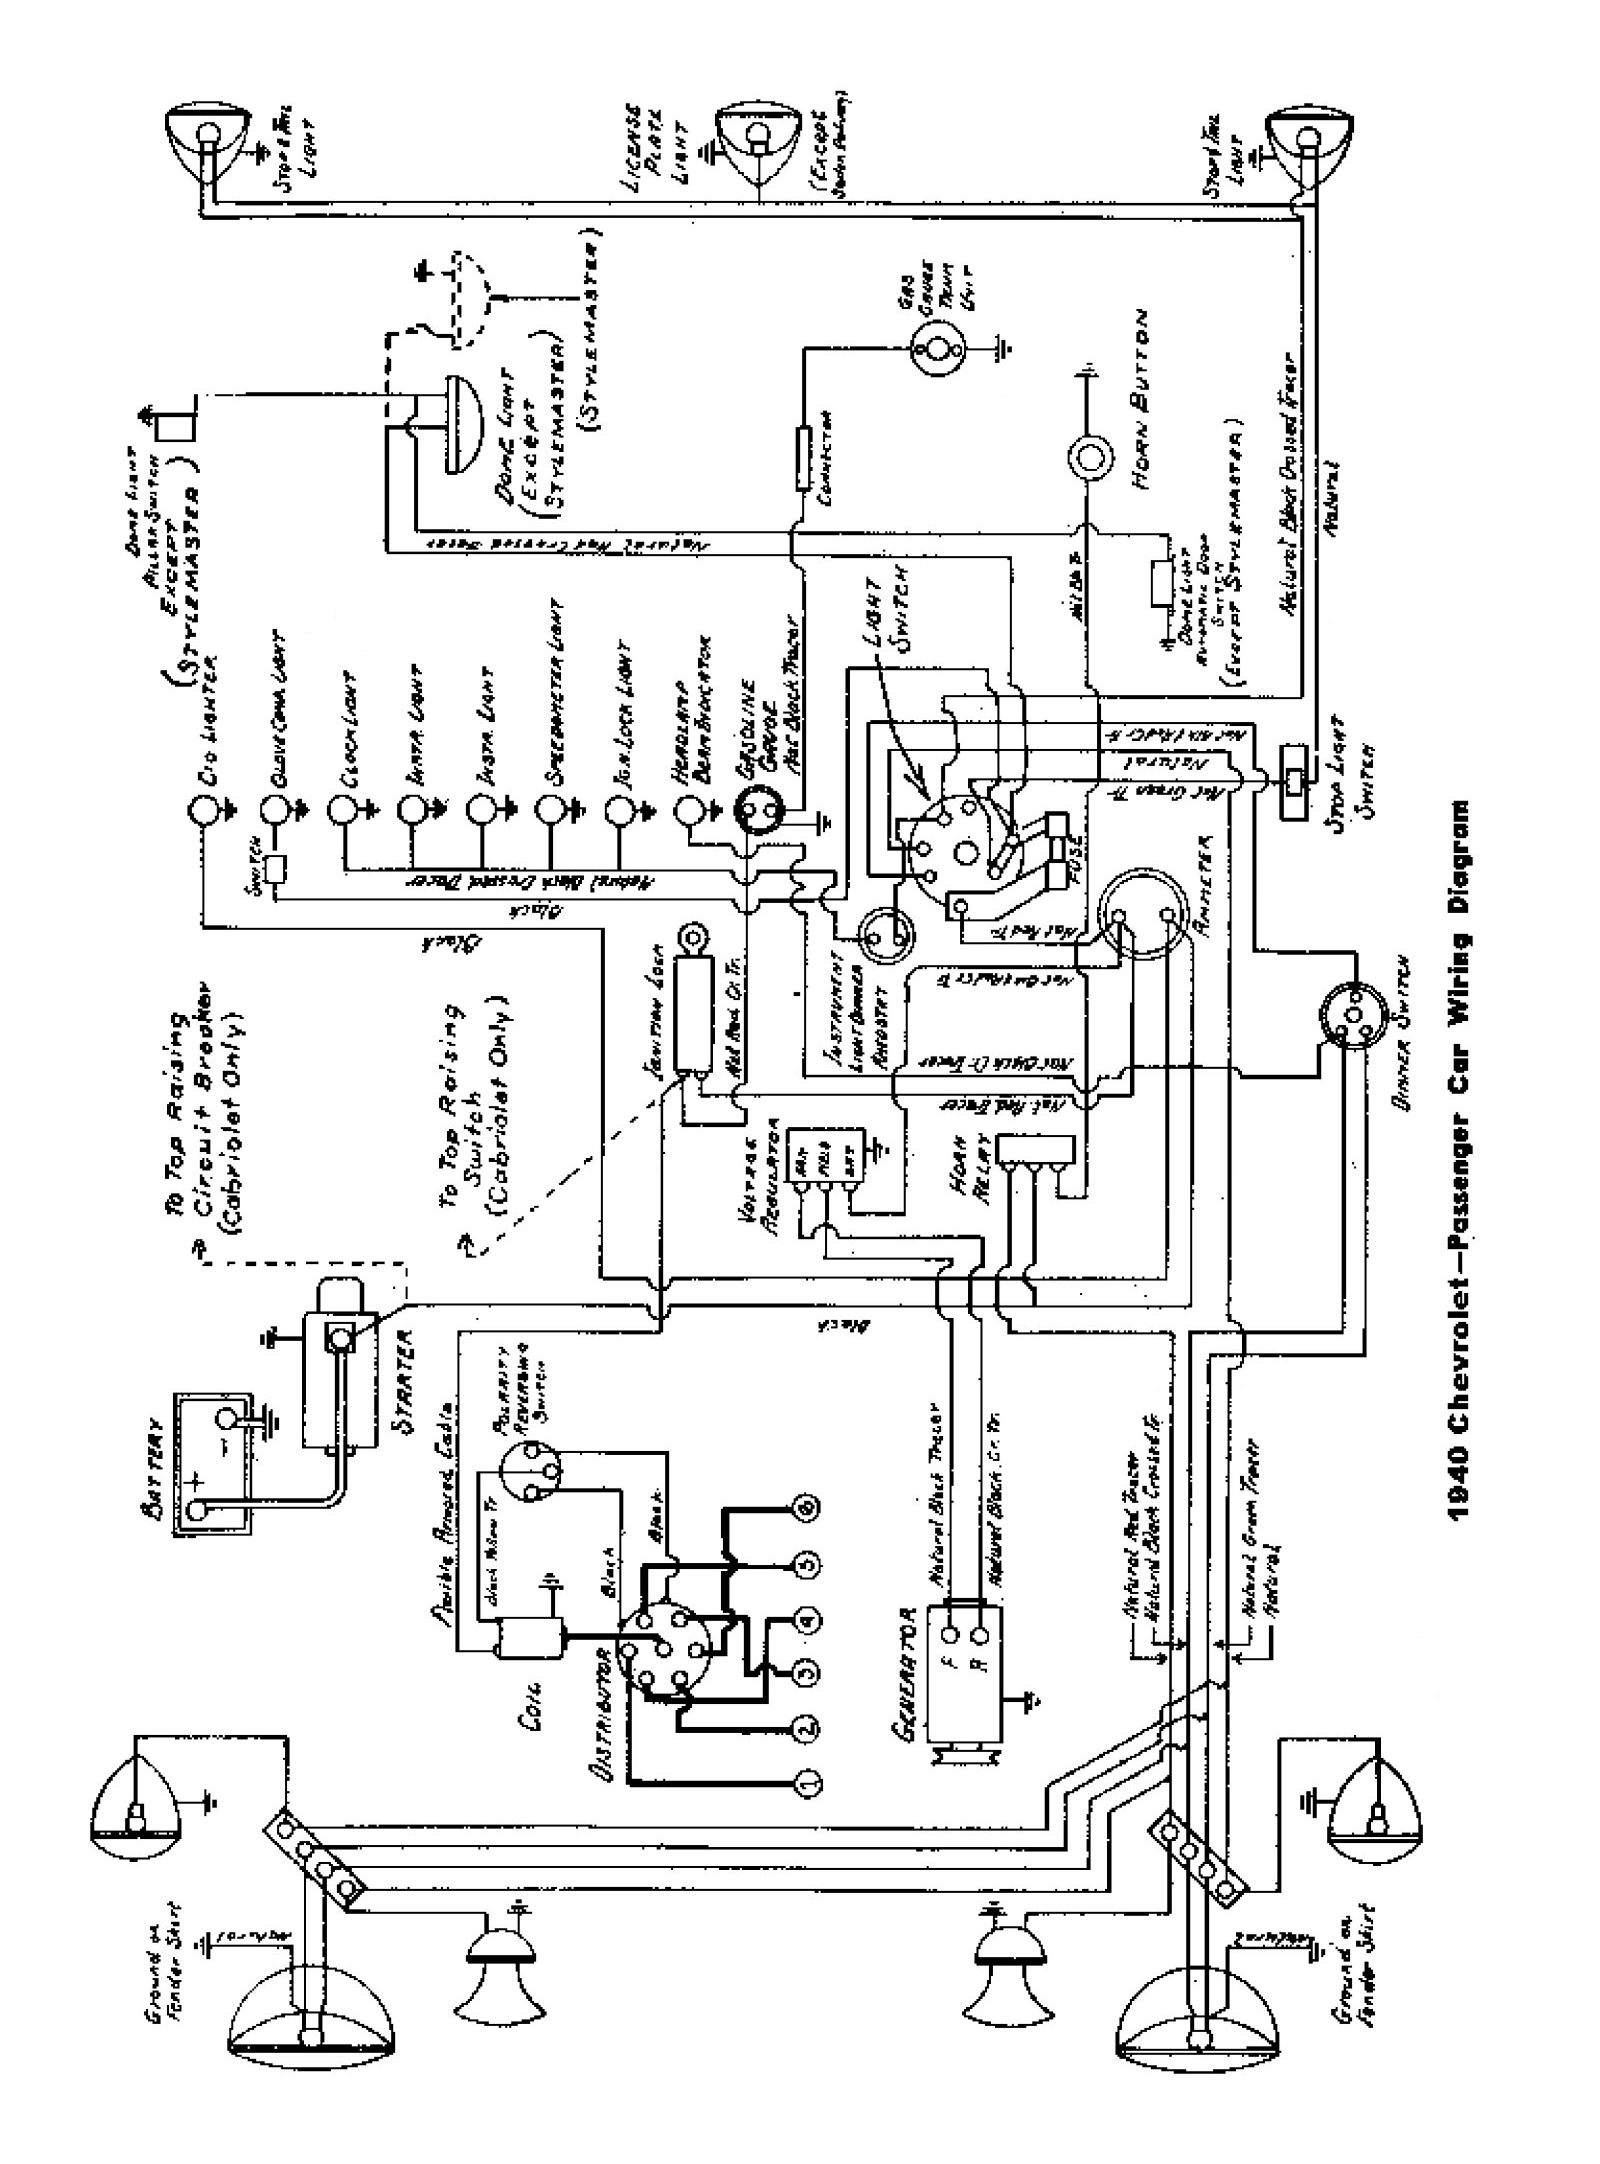 1938 Ford 8n Wiring Diagram Libraries Catterpillar F163 Plug Simple Schema1946 Chevy Truck Third Level Tail